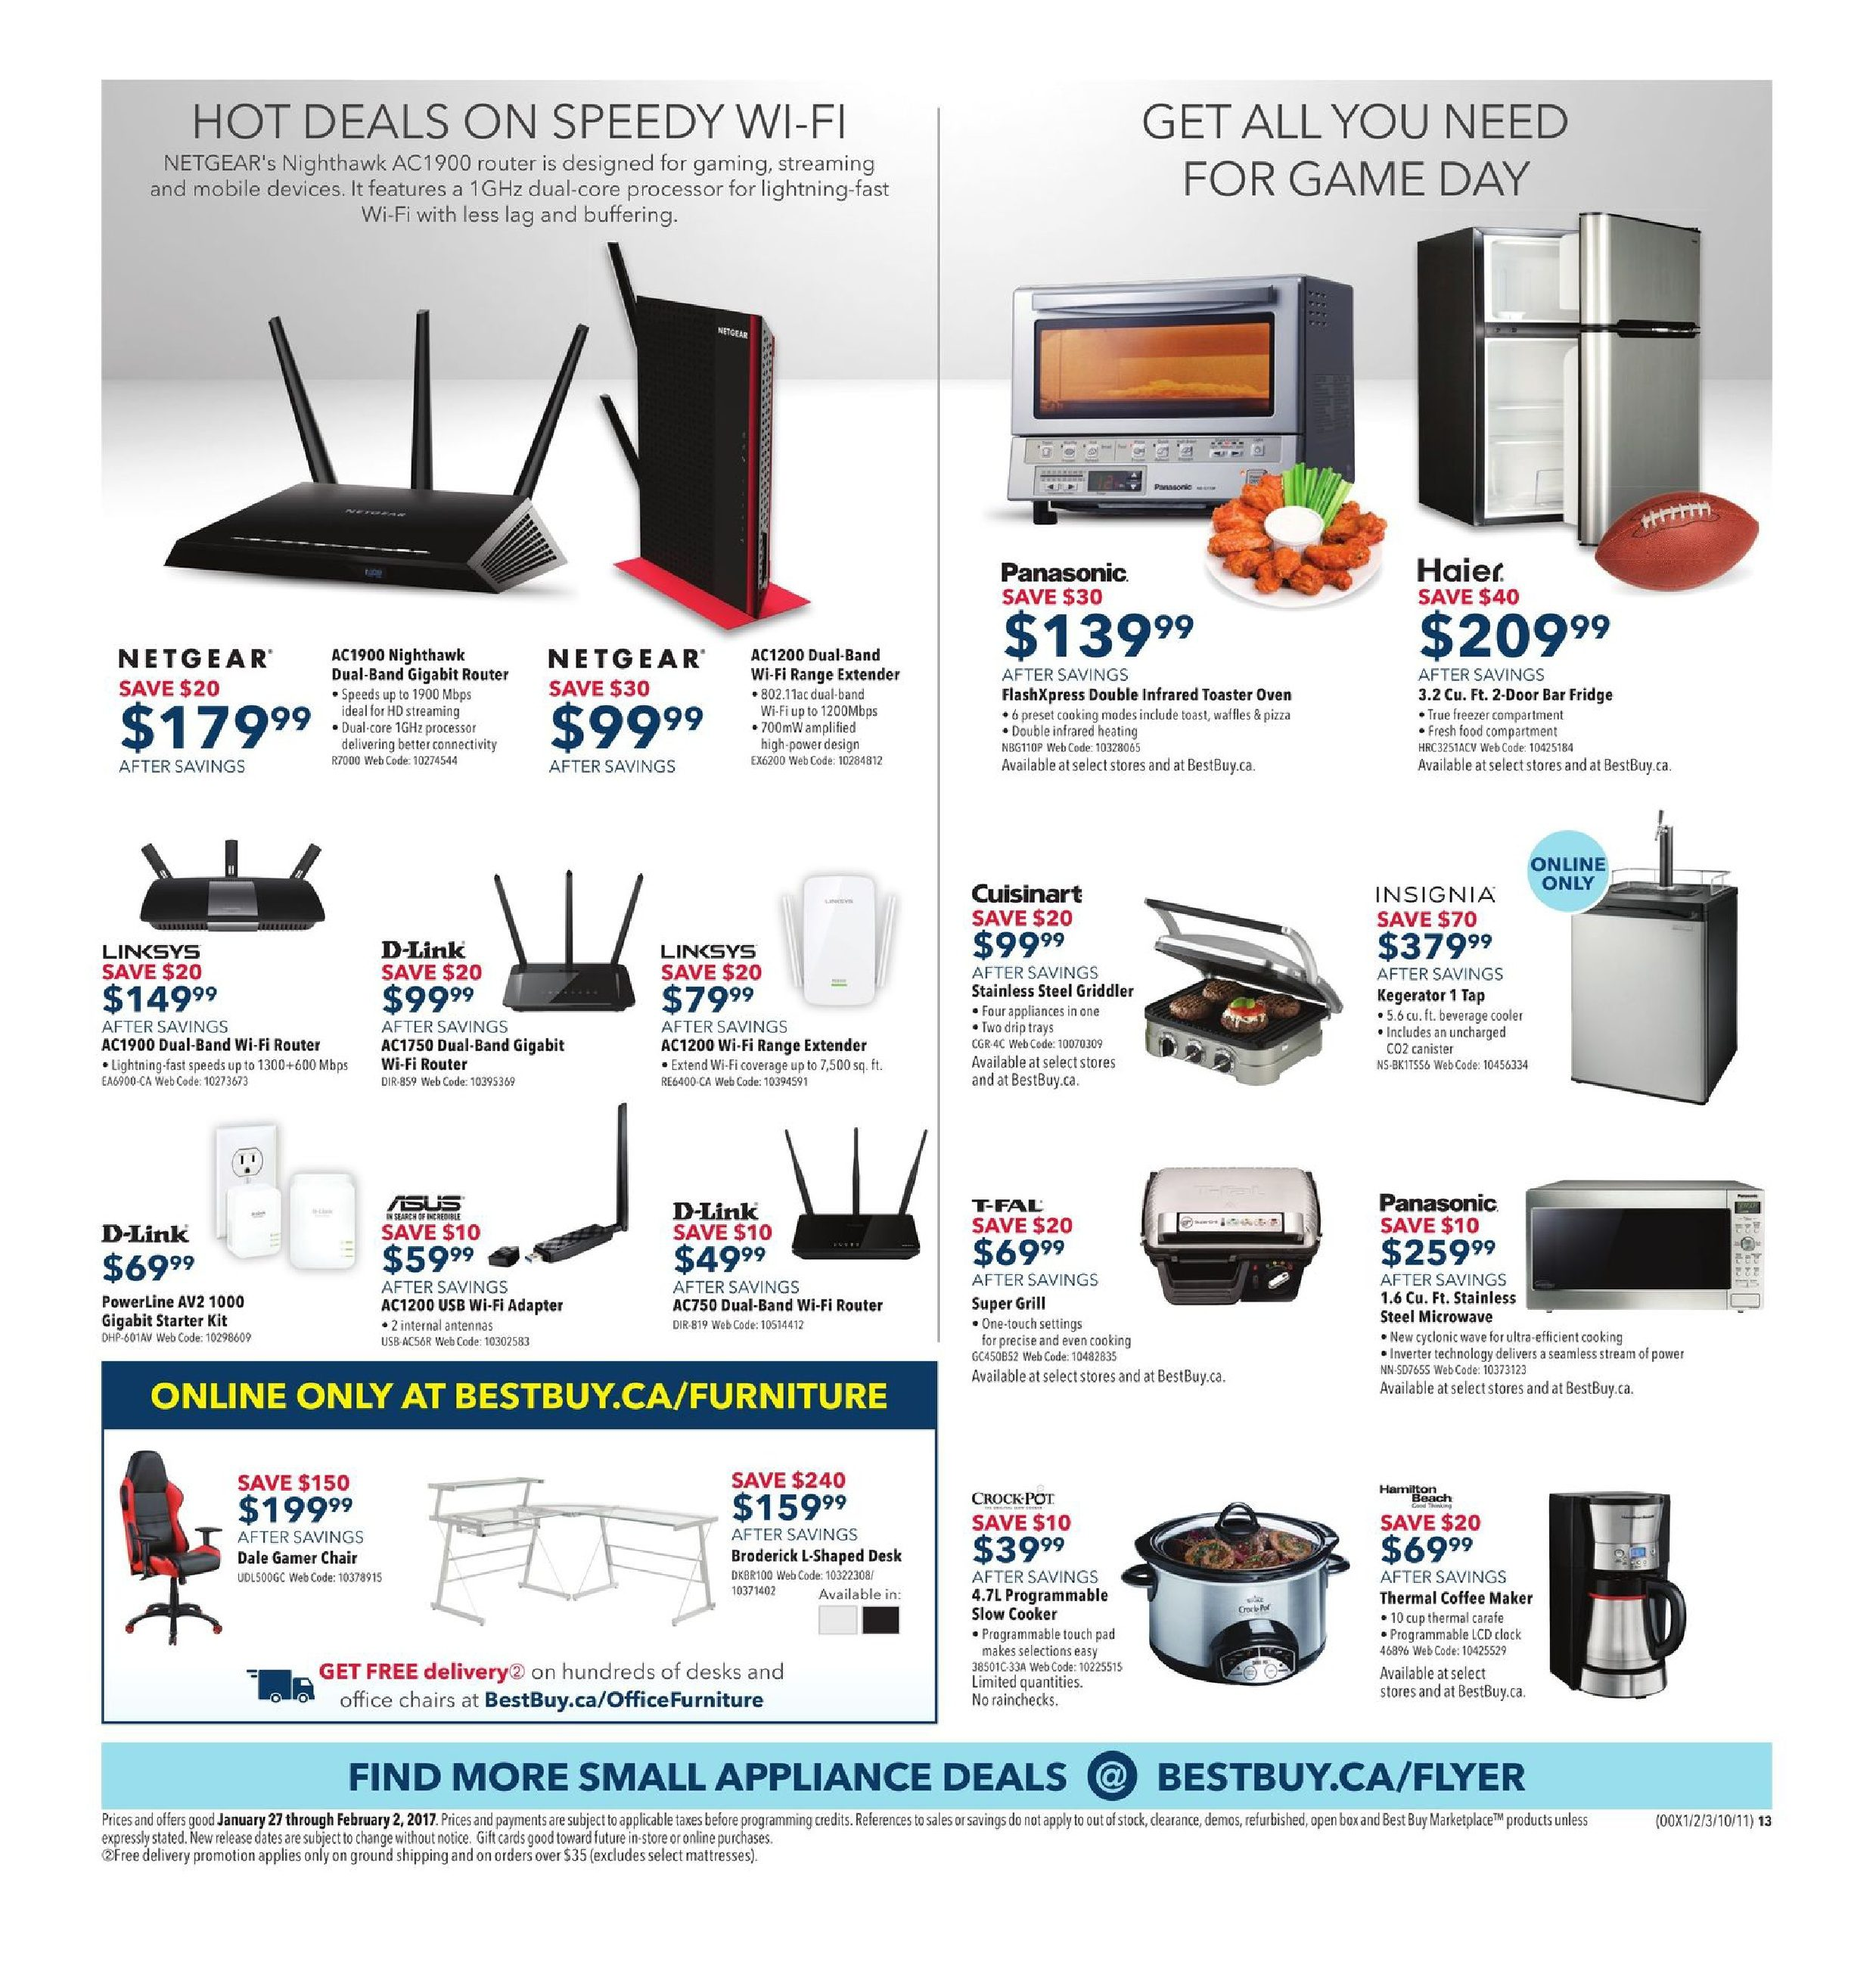 Best Buy Weekly Flyer Go Big For The Game Jan 27 480 Wiring Diagram Ez Workhorse Engine Feb 2